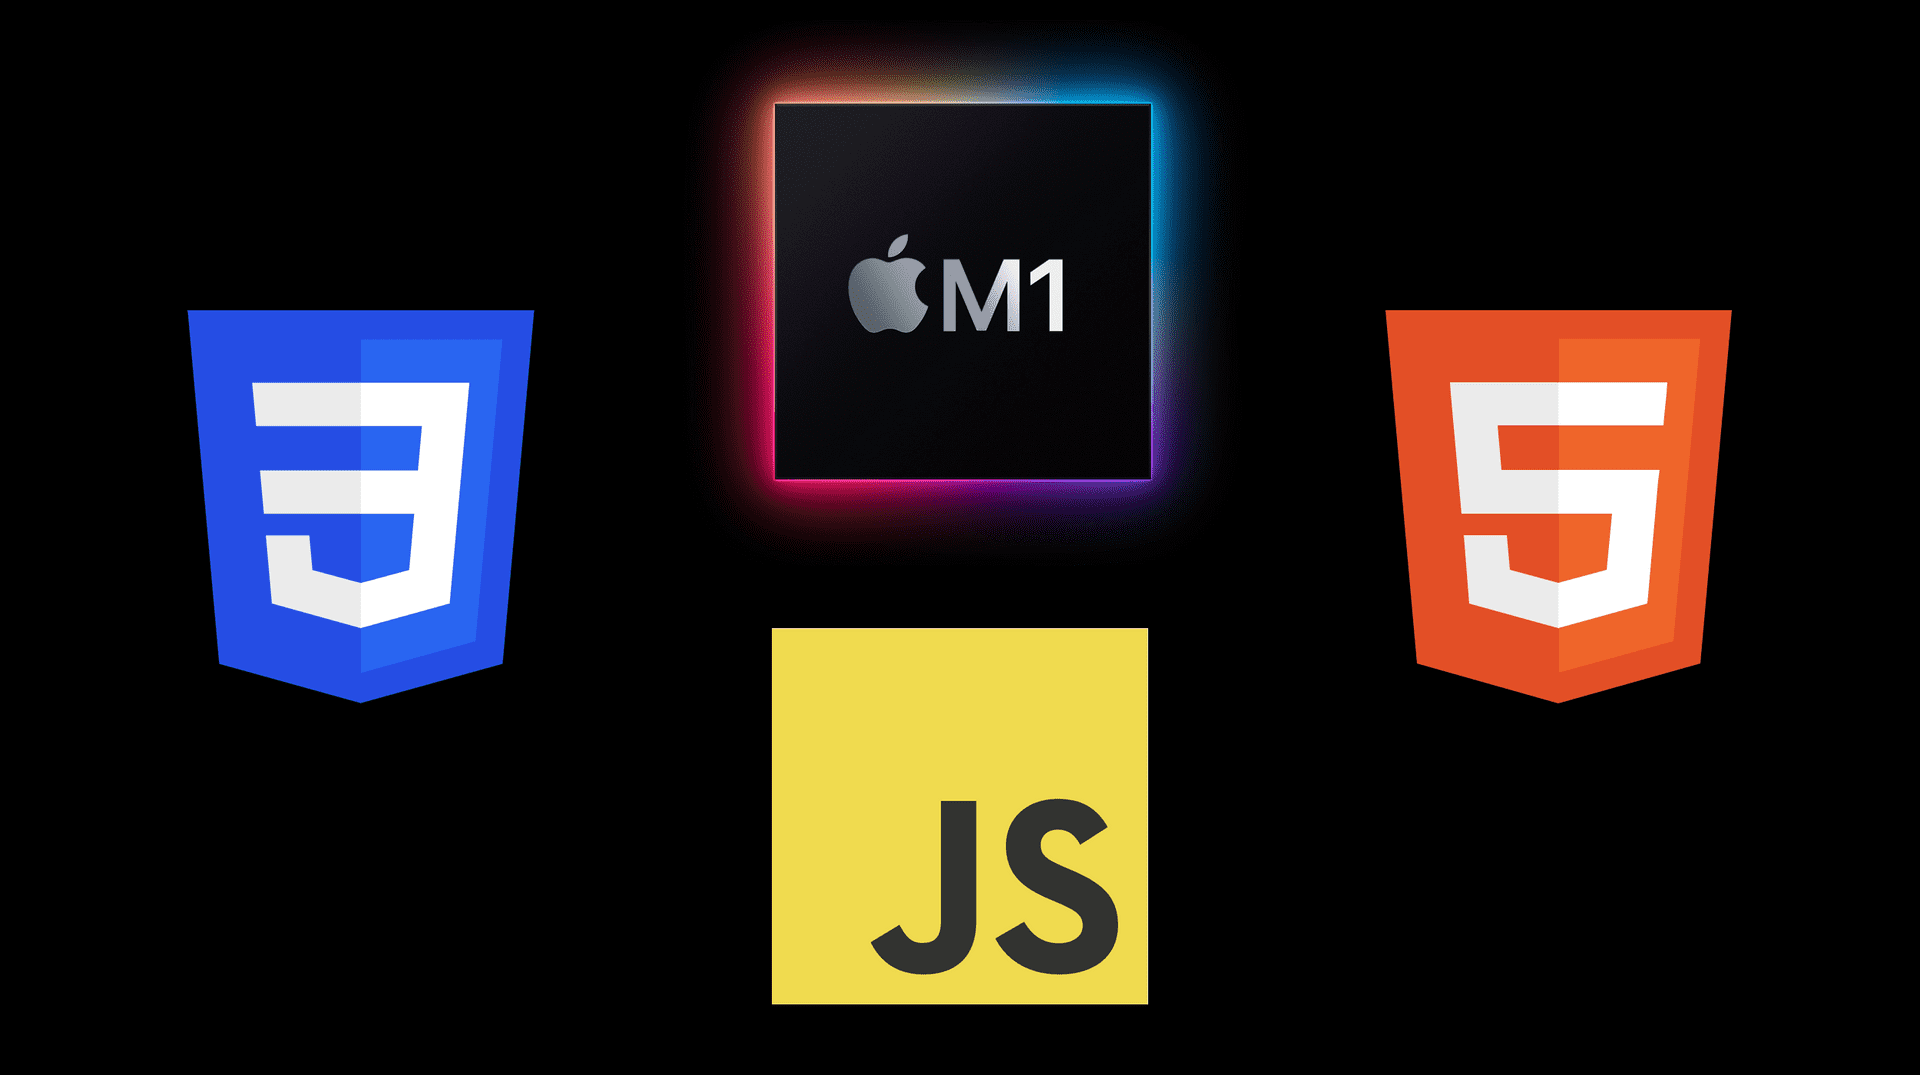 4 logos in a diamond layout on a black background. In a clockwise direction starting from the top, the M1 chip, HTML5, JacaScript, CSS3